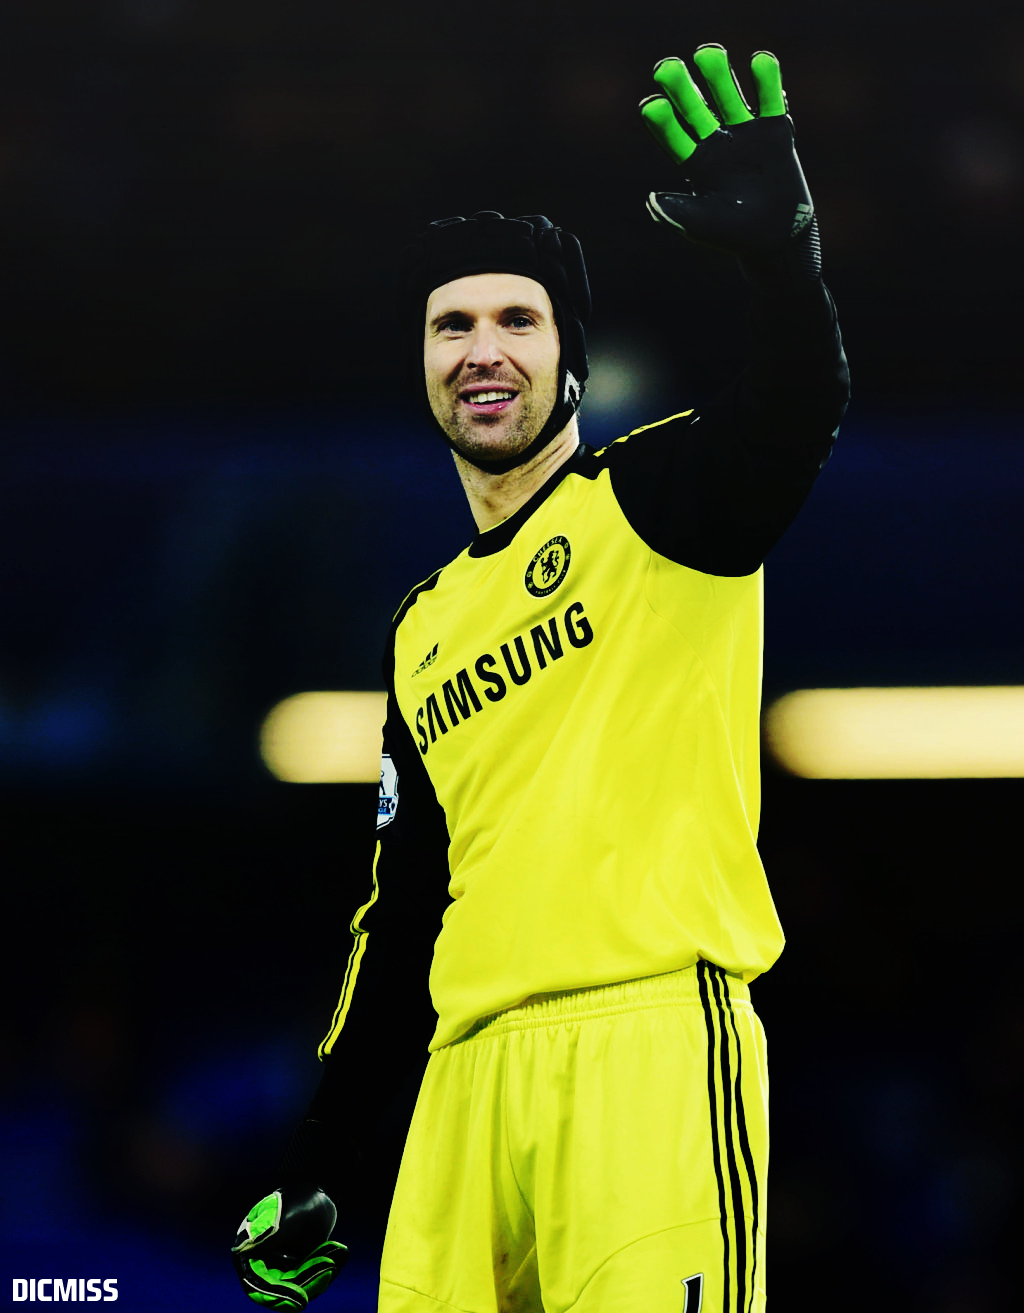 Petr Cech by Dicmiss on DeviantArt